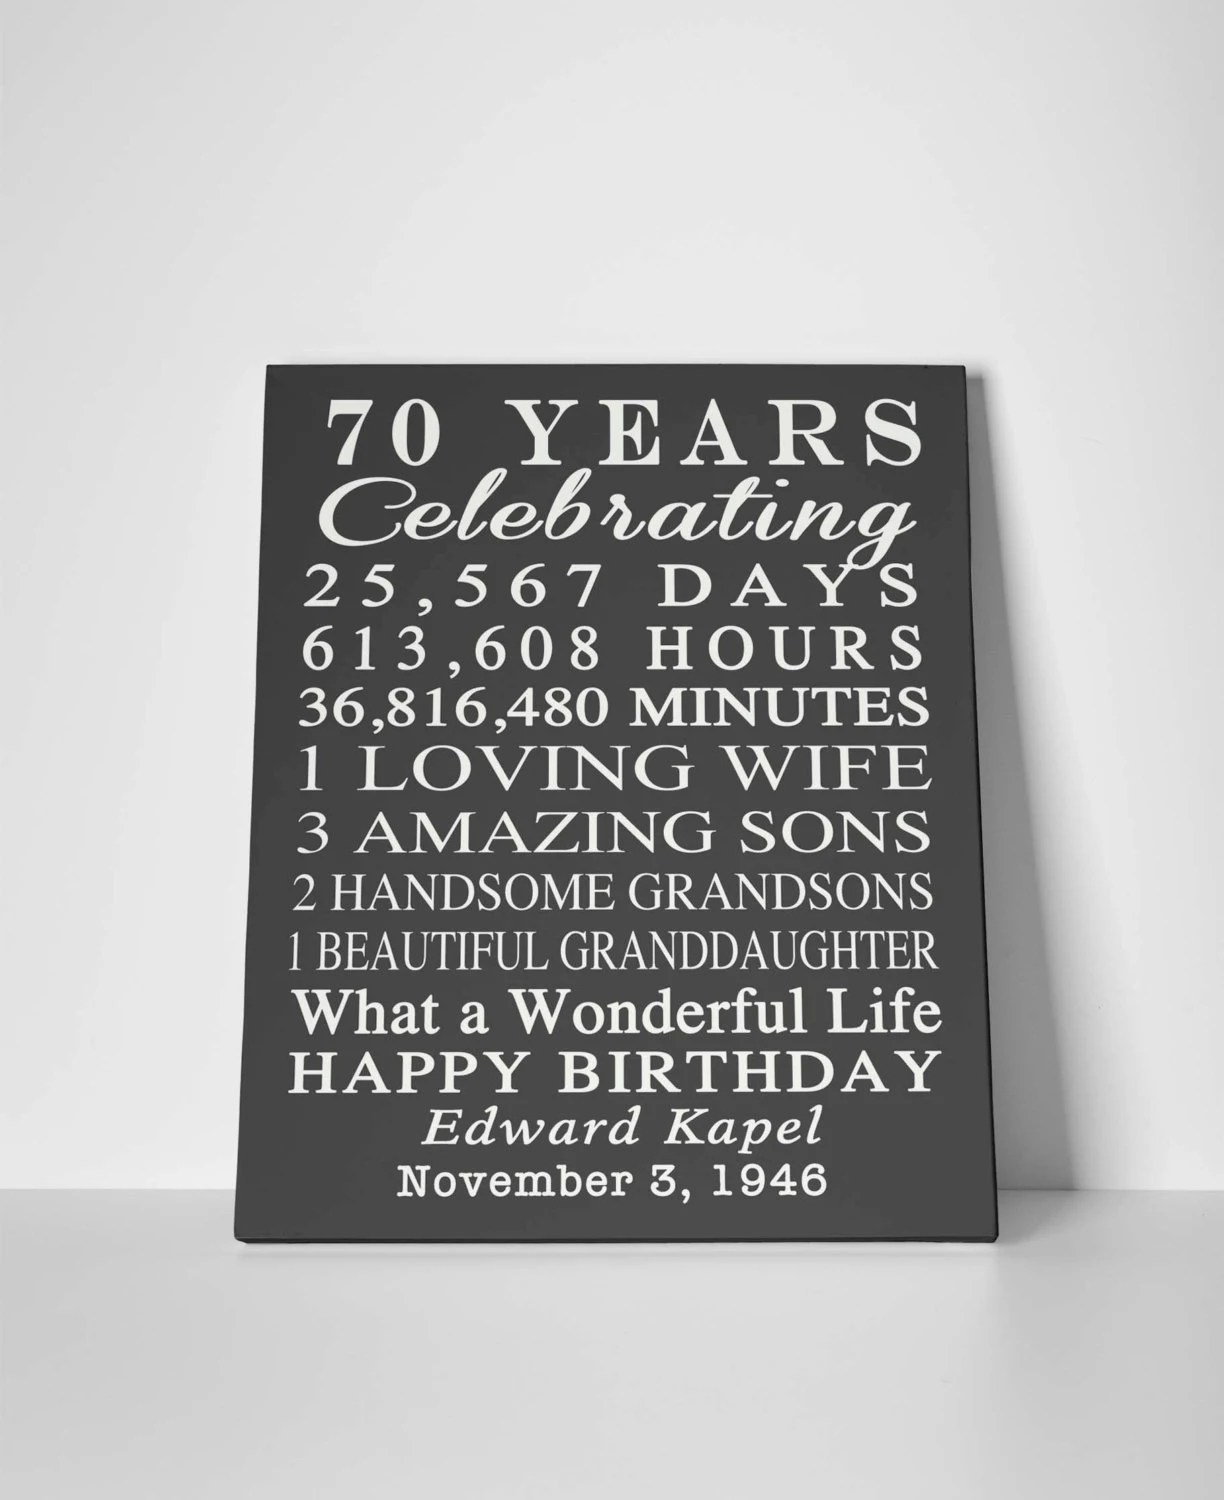 70th Wedding Anniversary Gifts : wedding, anniversary, gifts, Anniversary, Parents, Wedding